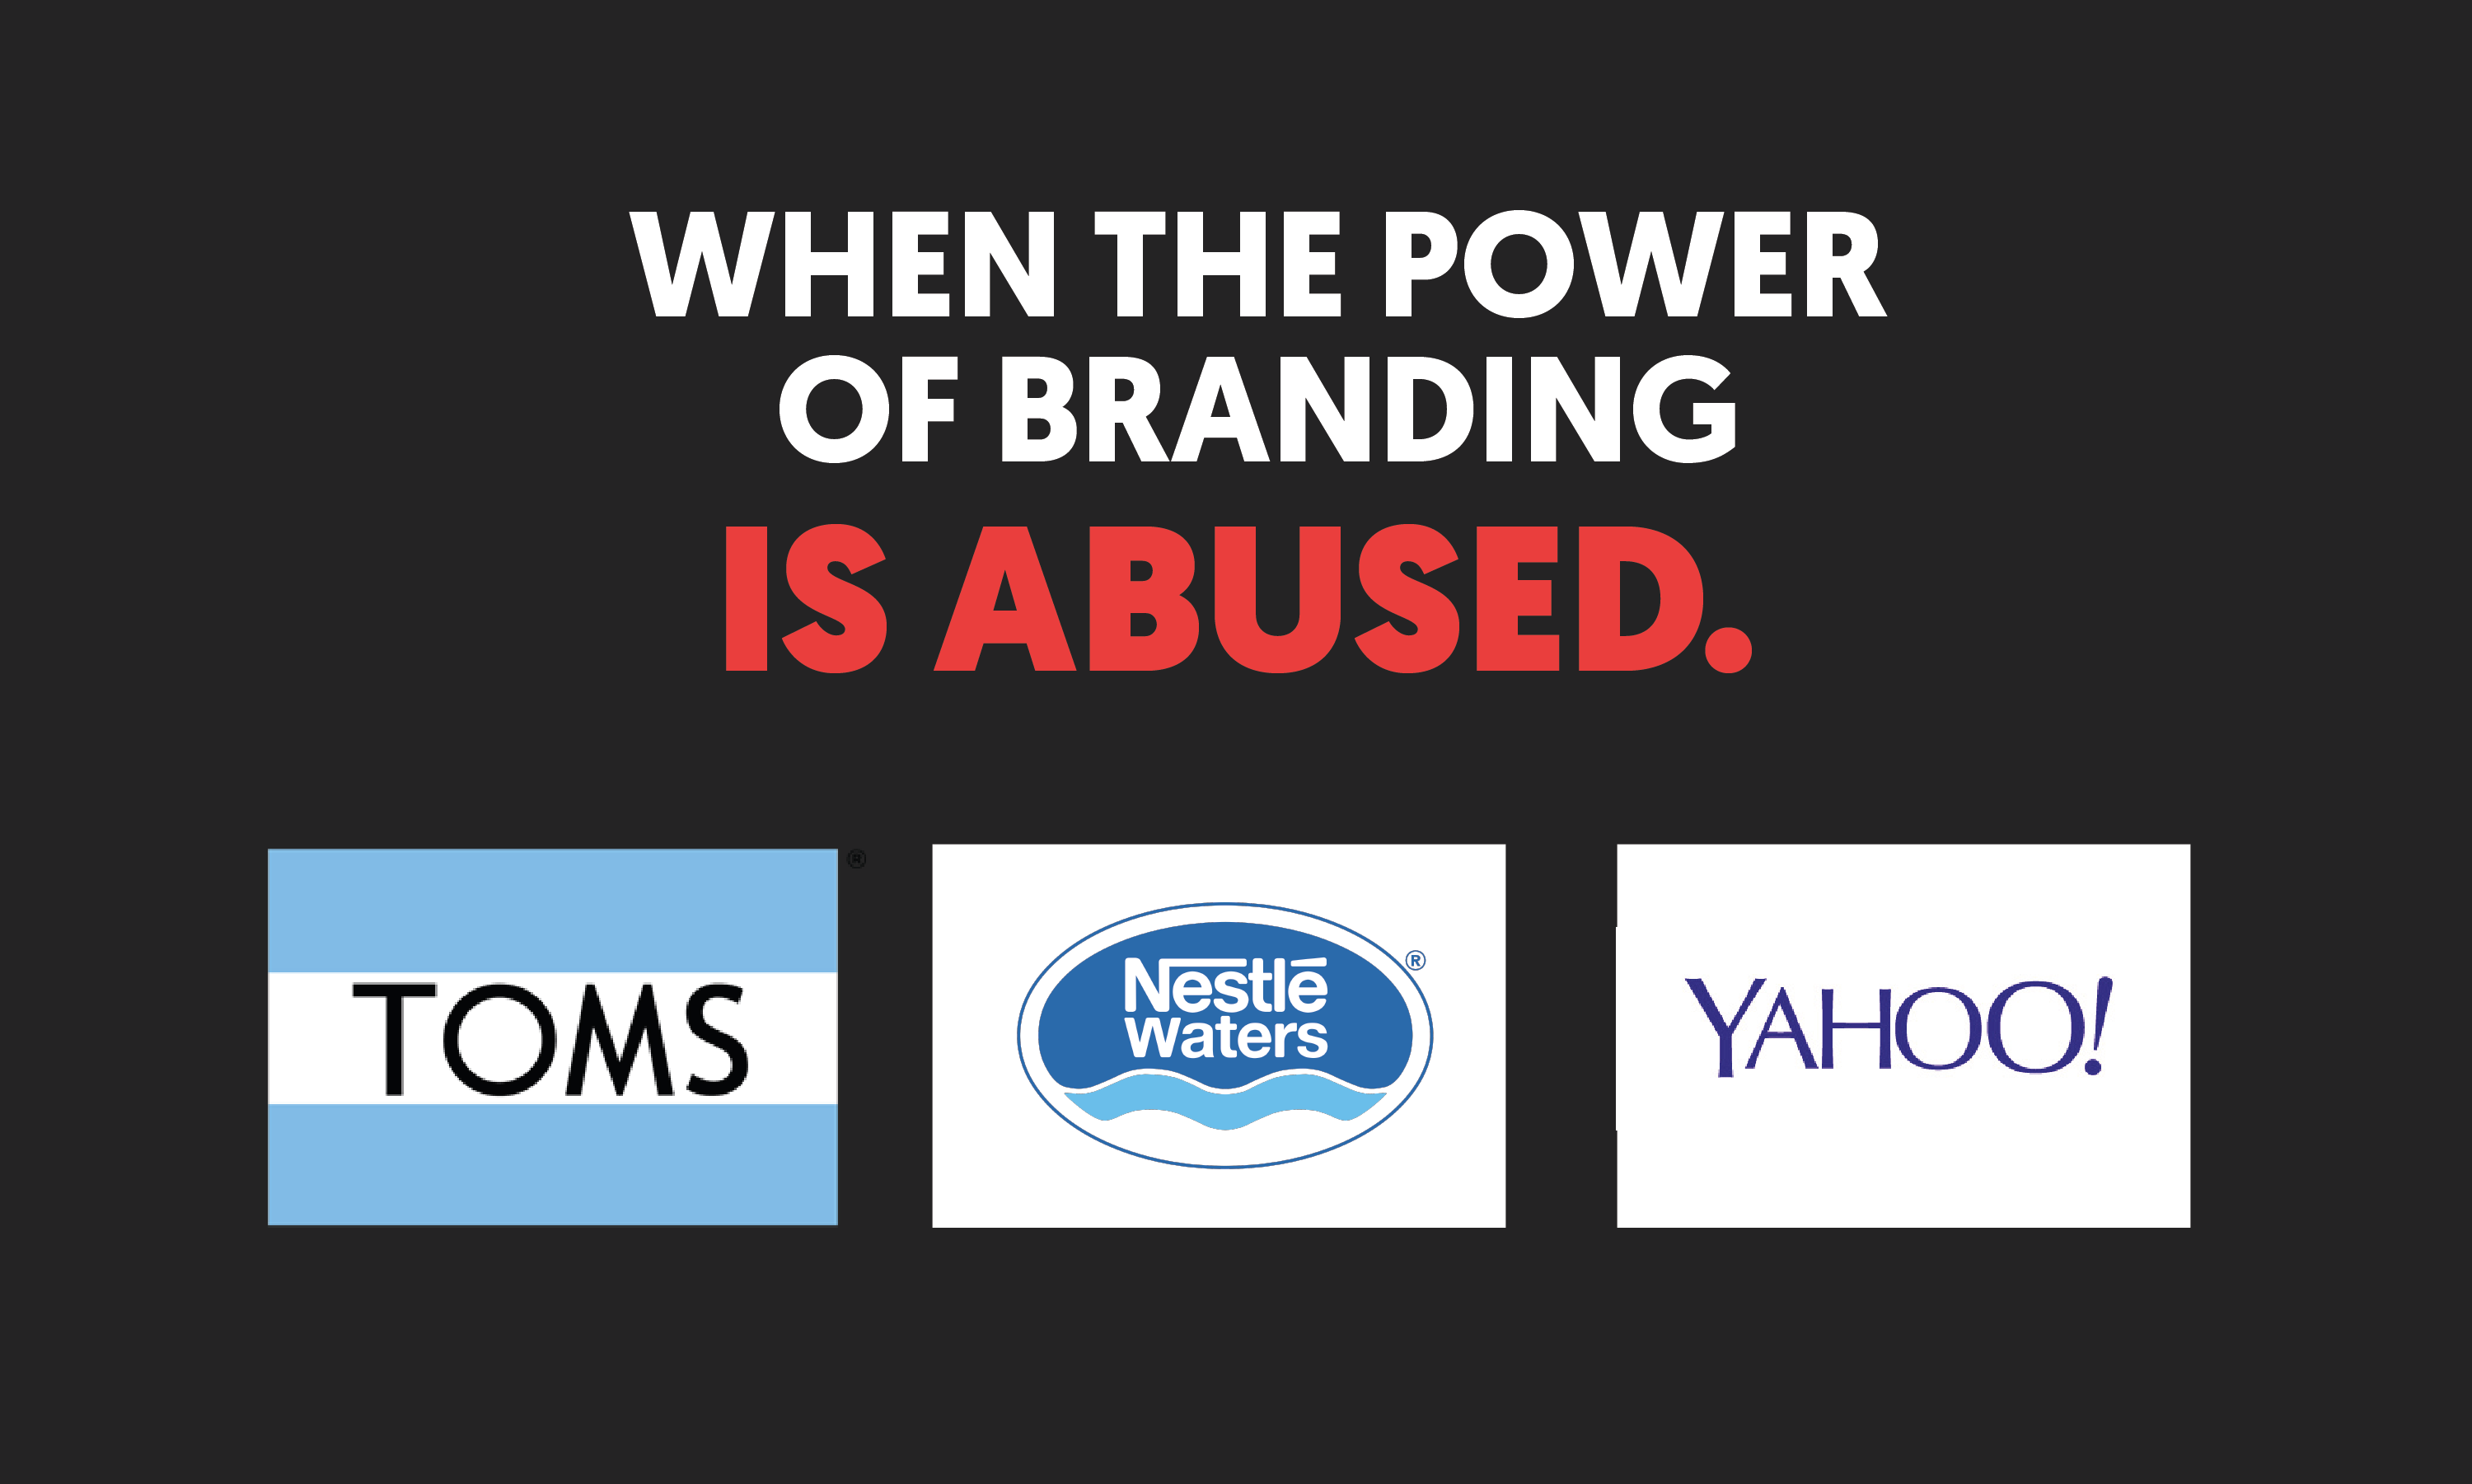 when the power of branding is abused.